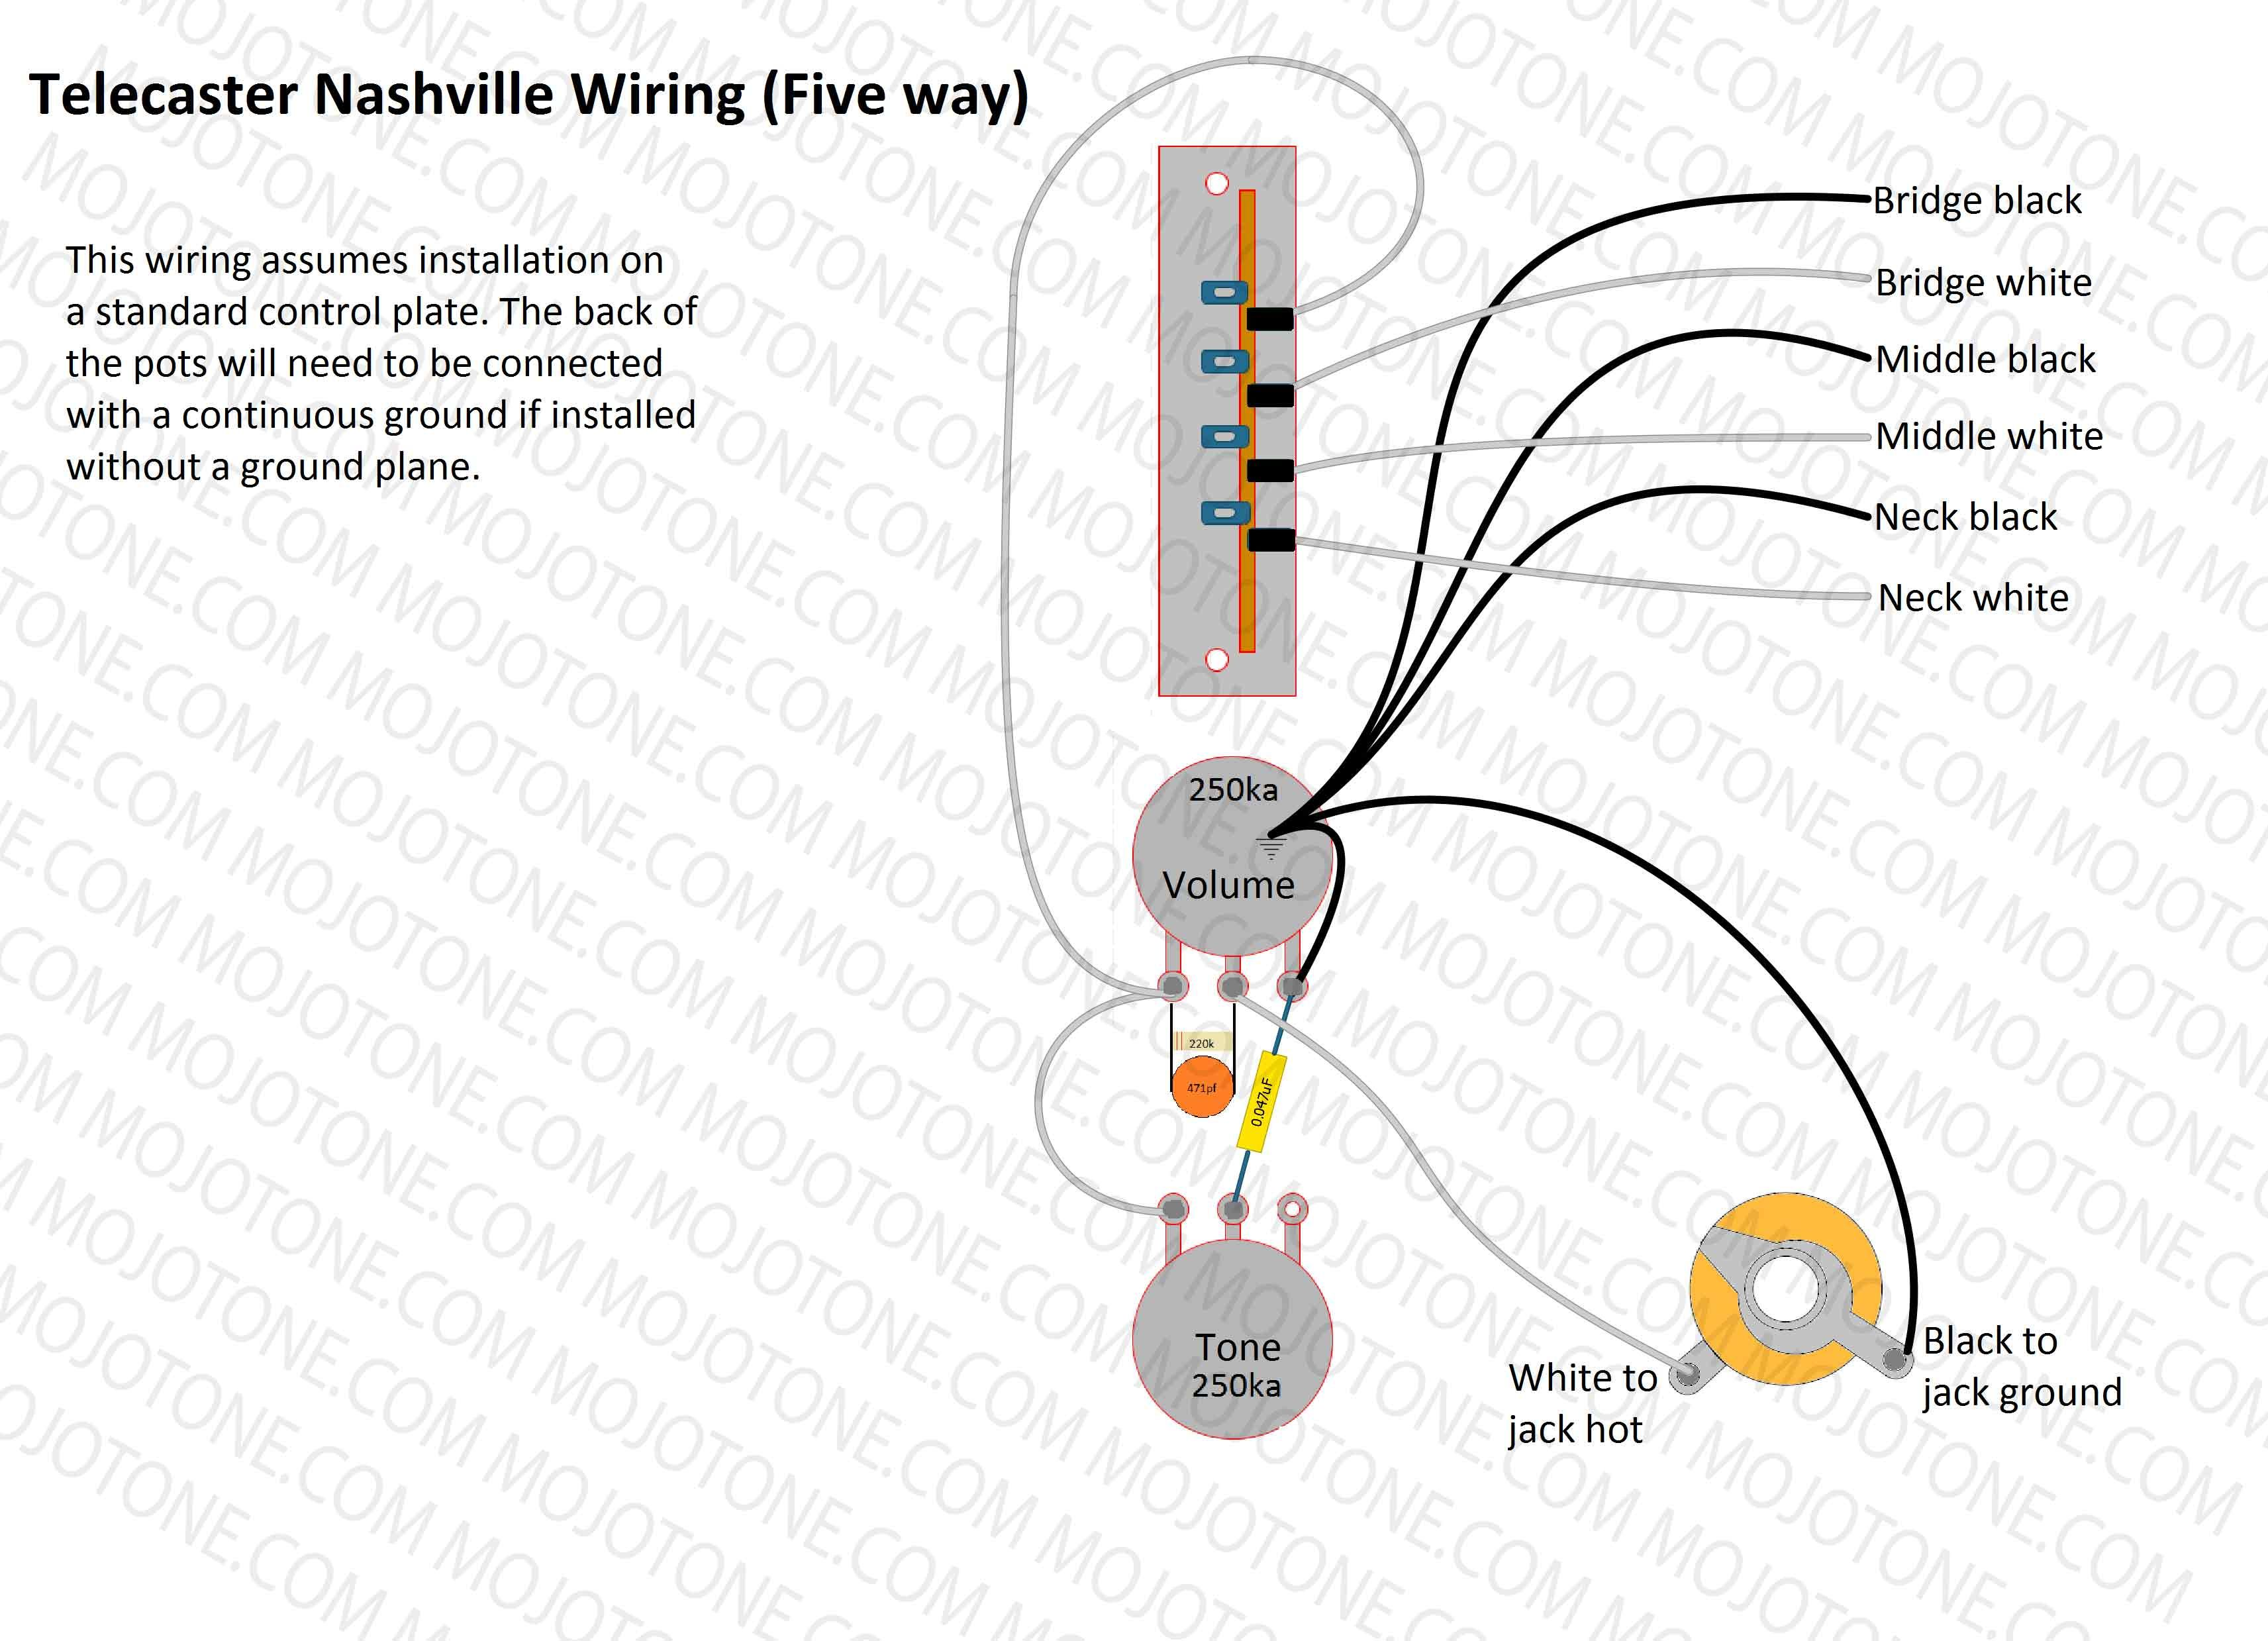 telecaster wiring diagram 4 way switch banquet table set up nashville telecasters